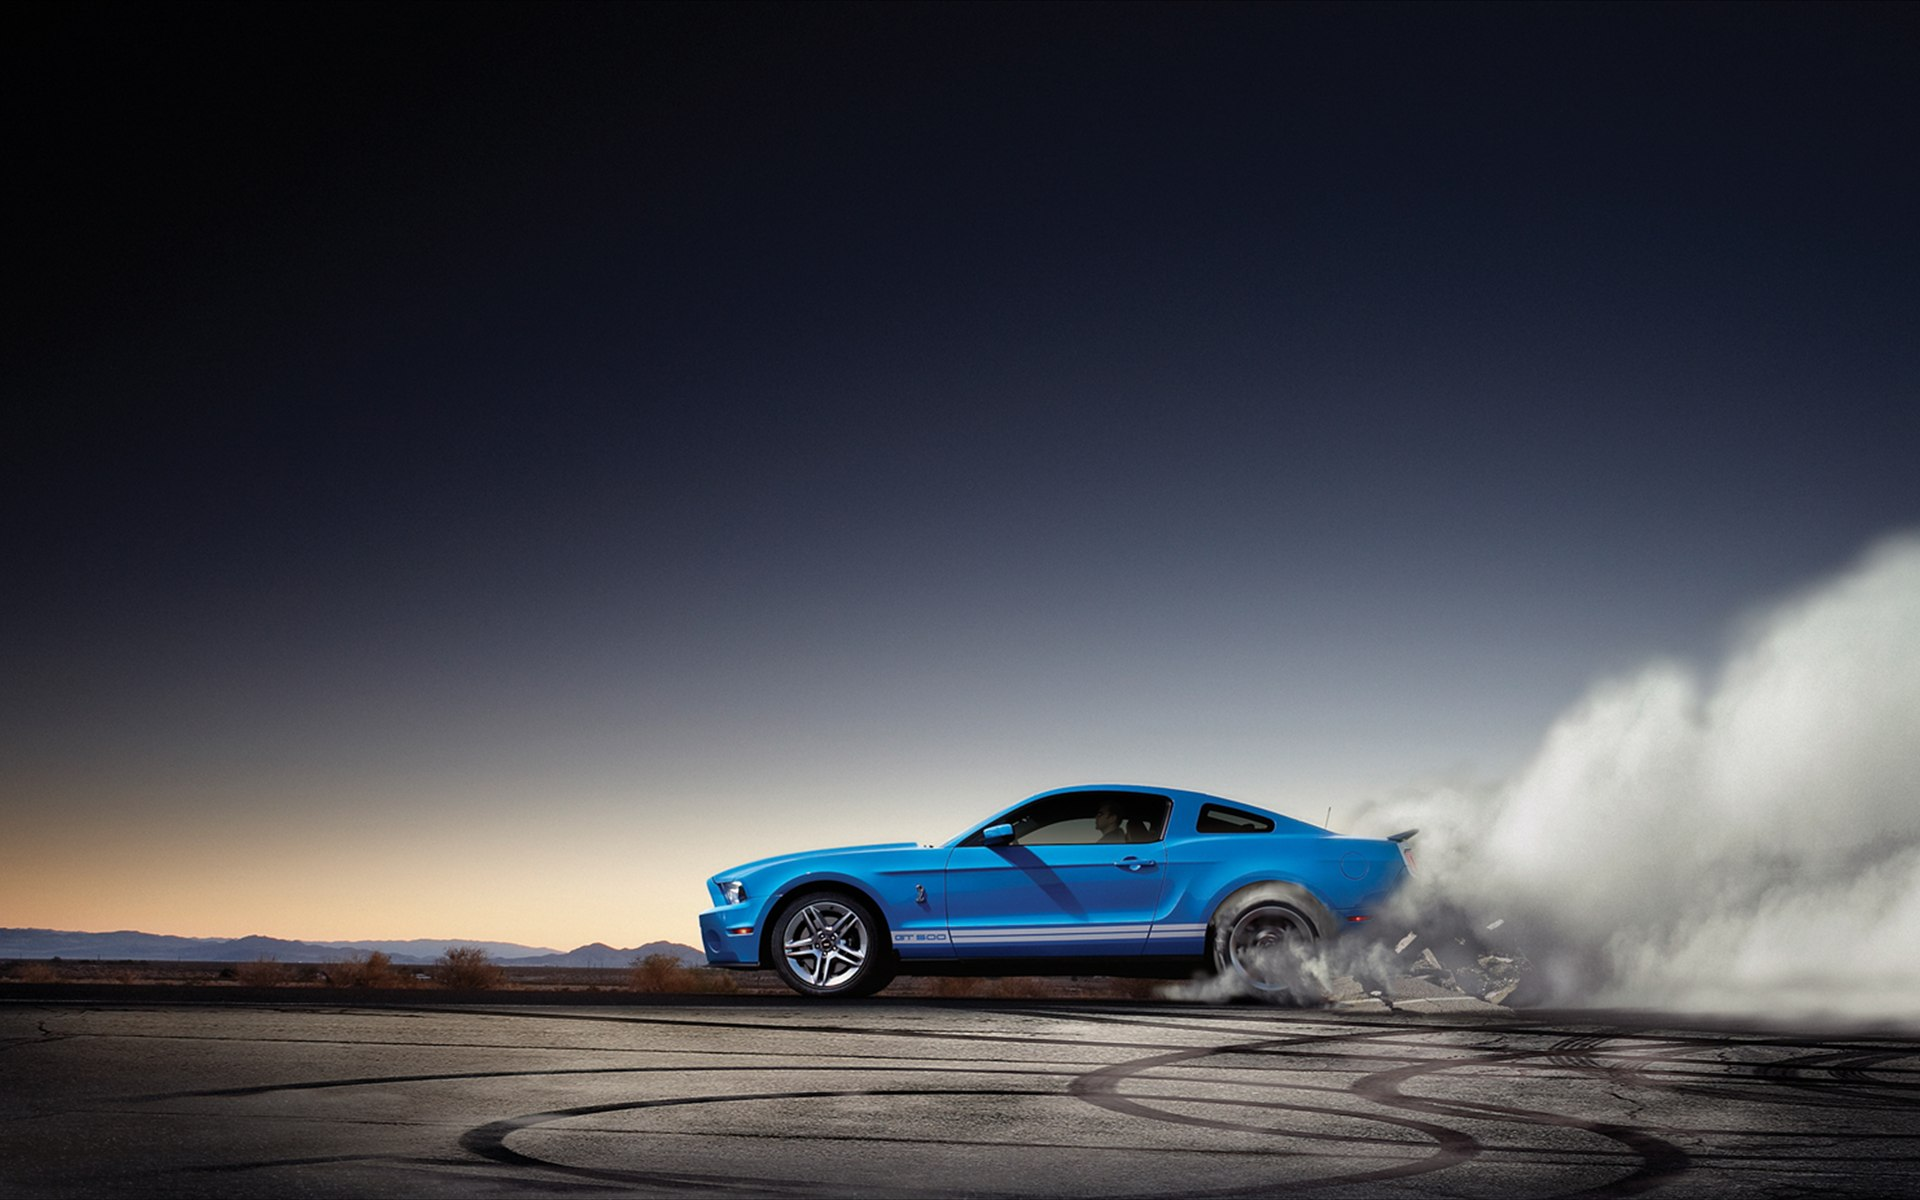 Ford Wallpaper backgrounds In HD for Download 1920x1200